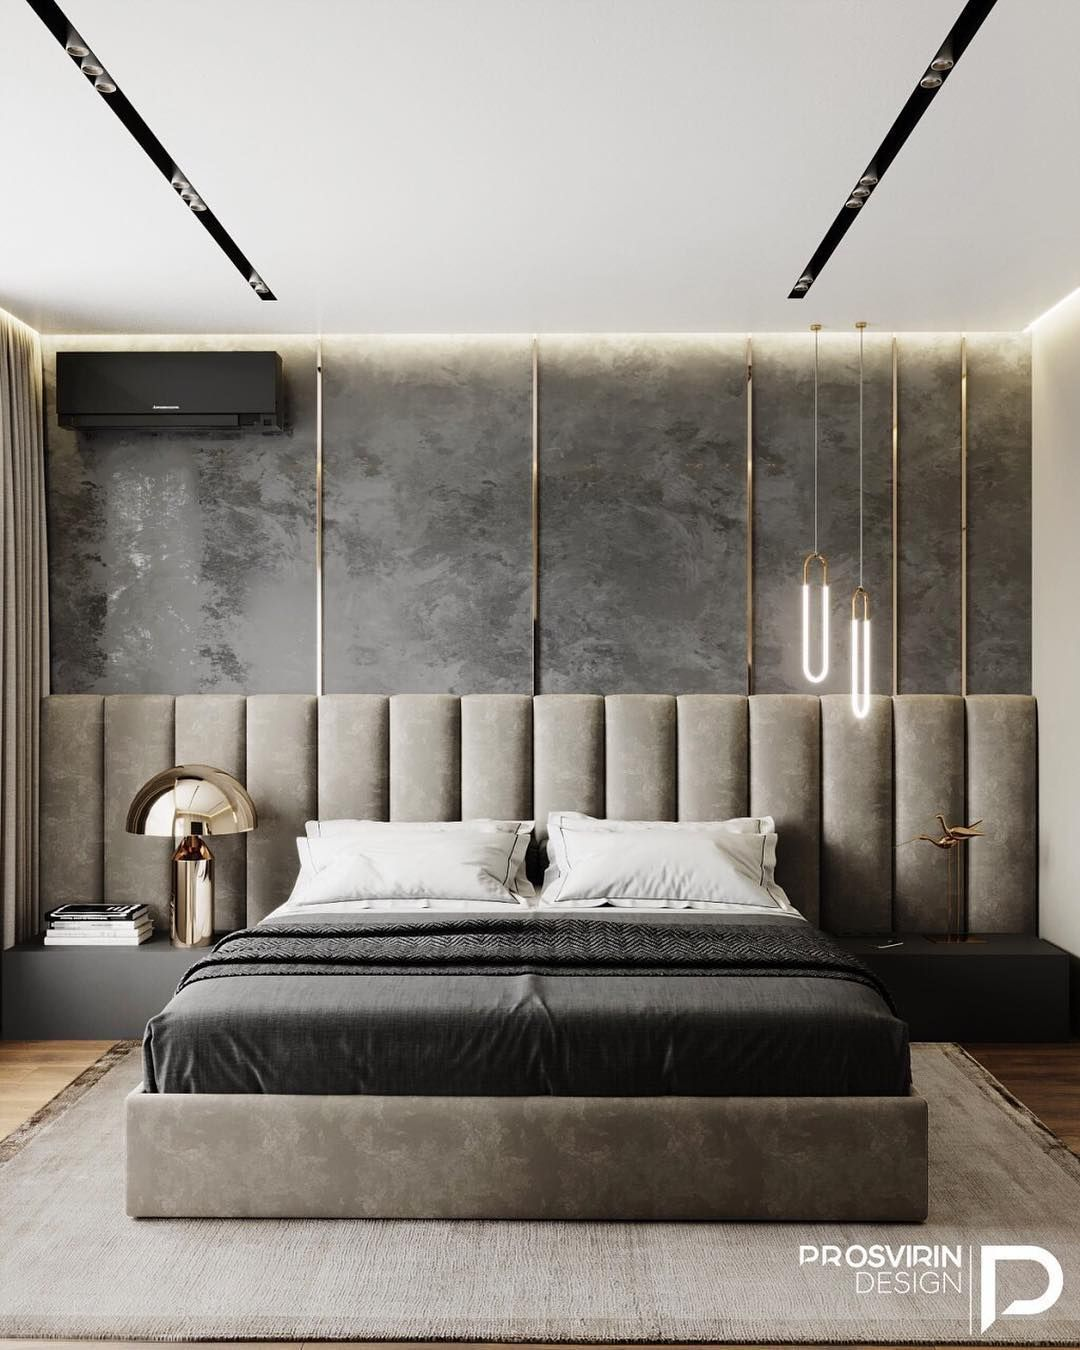 Have You Ever Think The Hundreds Of Details That Each Bedroom Hotel Can Have Get Inspired On Pullc Luxury Bedroom Master Luxurious Bedrooms Bedroom Bed Design